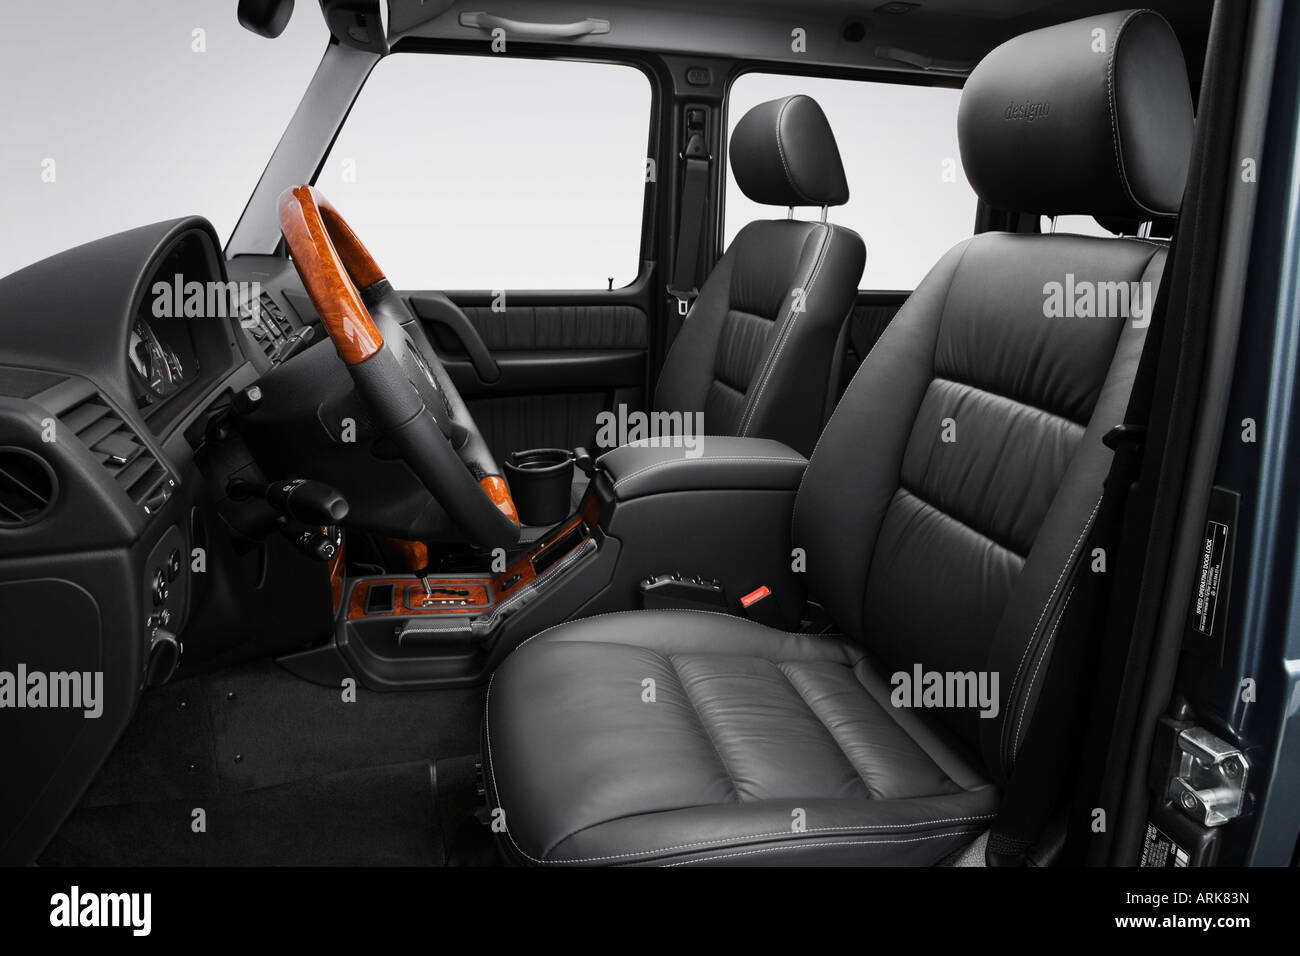 2008 mercedes benz g class g55 amg kompressor in gray front seats